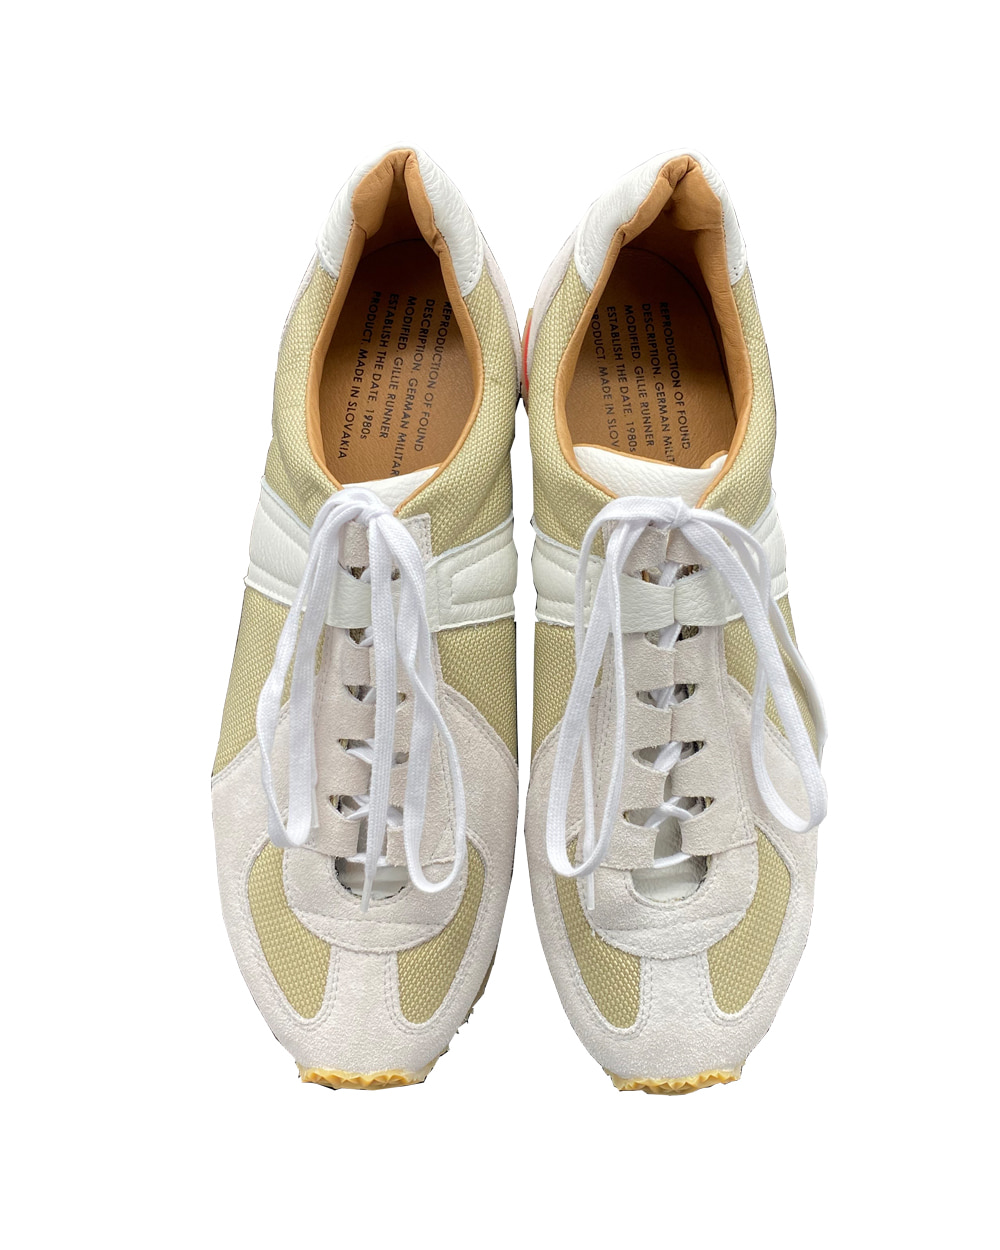 리프로덕션 오브 파운드 GERMAN MILITARY TRAINER 1766CSL (Beige/White)